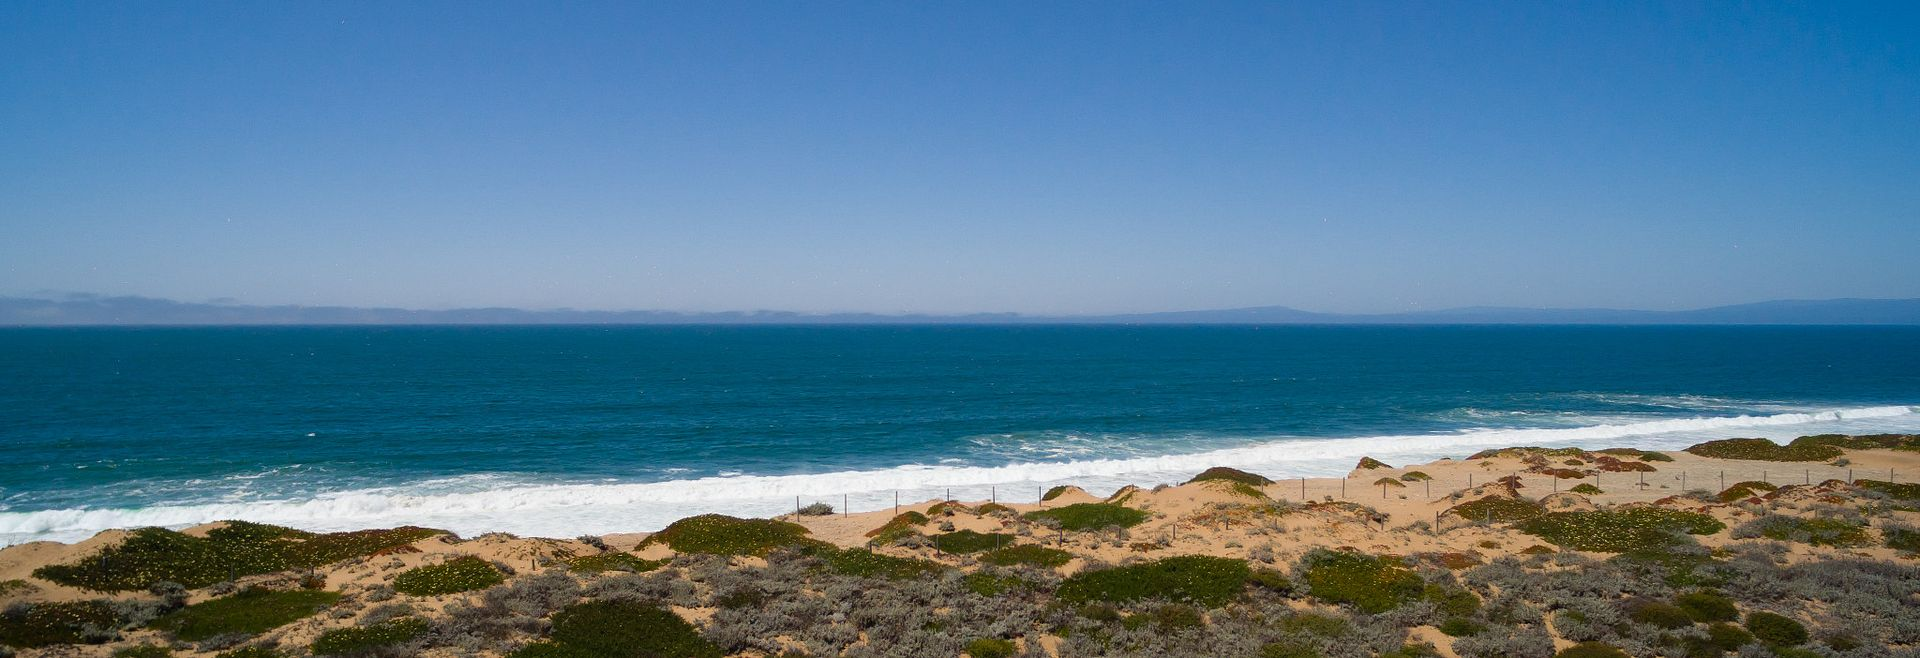 The Dunes on Monterey Bay